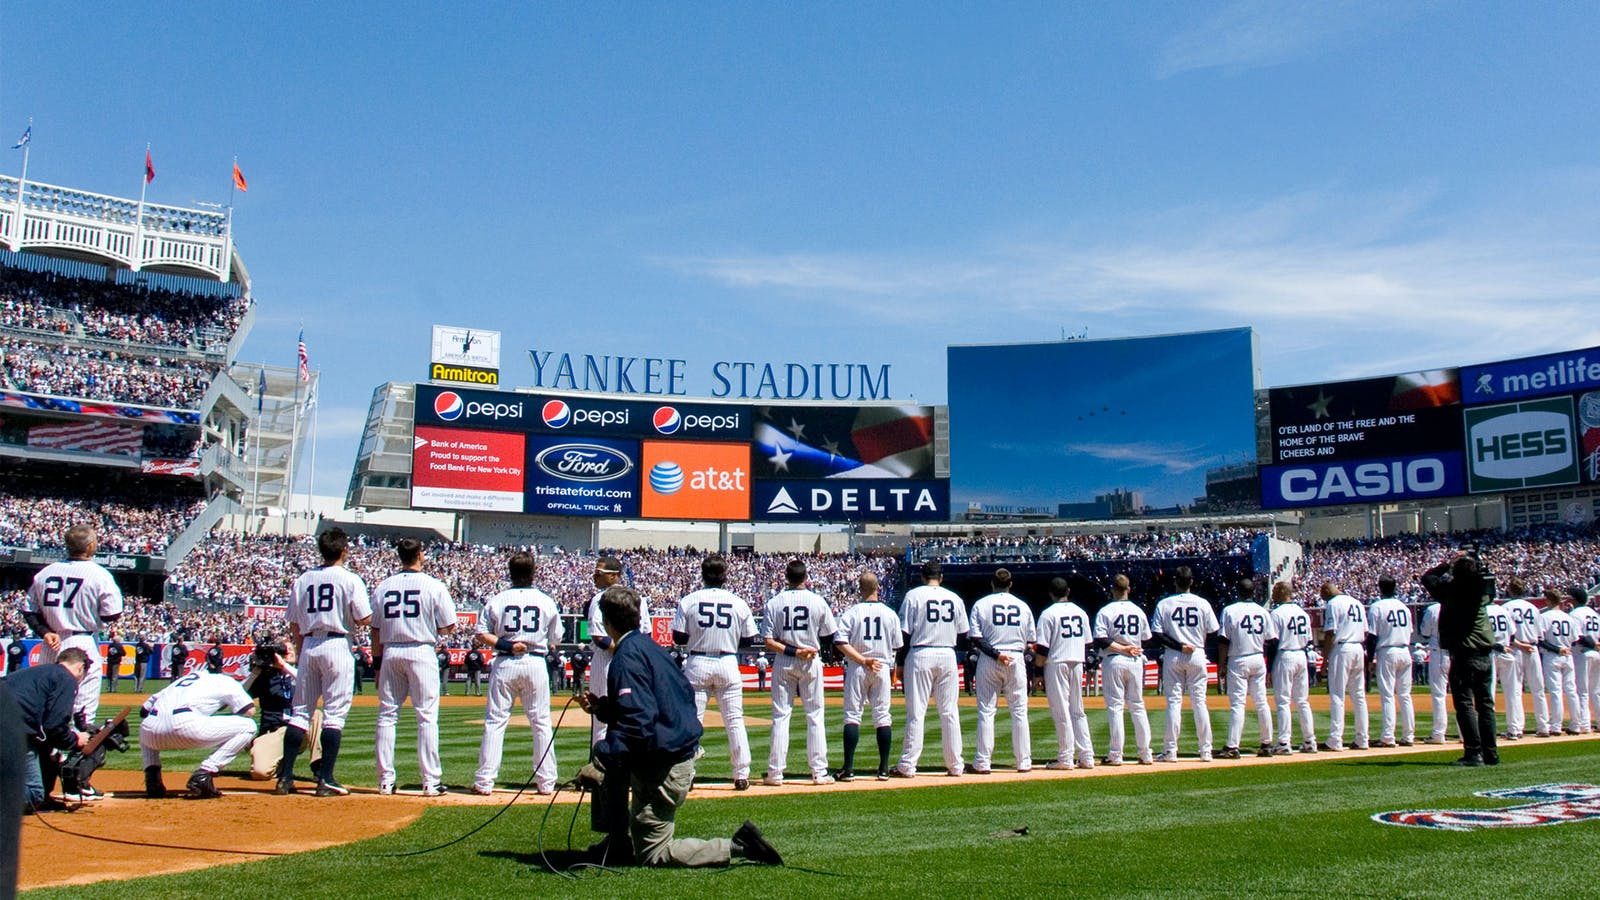 The New York Yankees, whose games are carried on the Fox sports channel the Yes Network. Photo by Wikimedia Commons/Jeremy M. Call